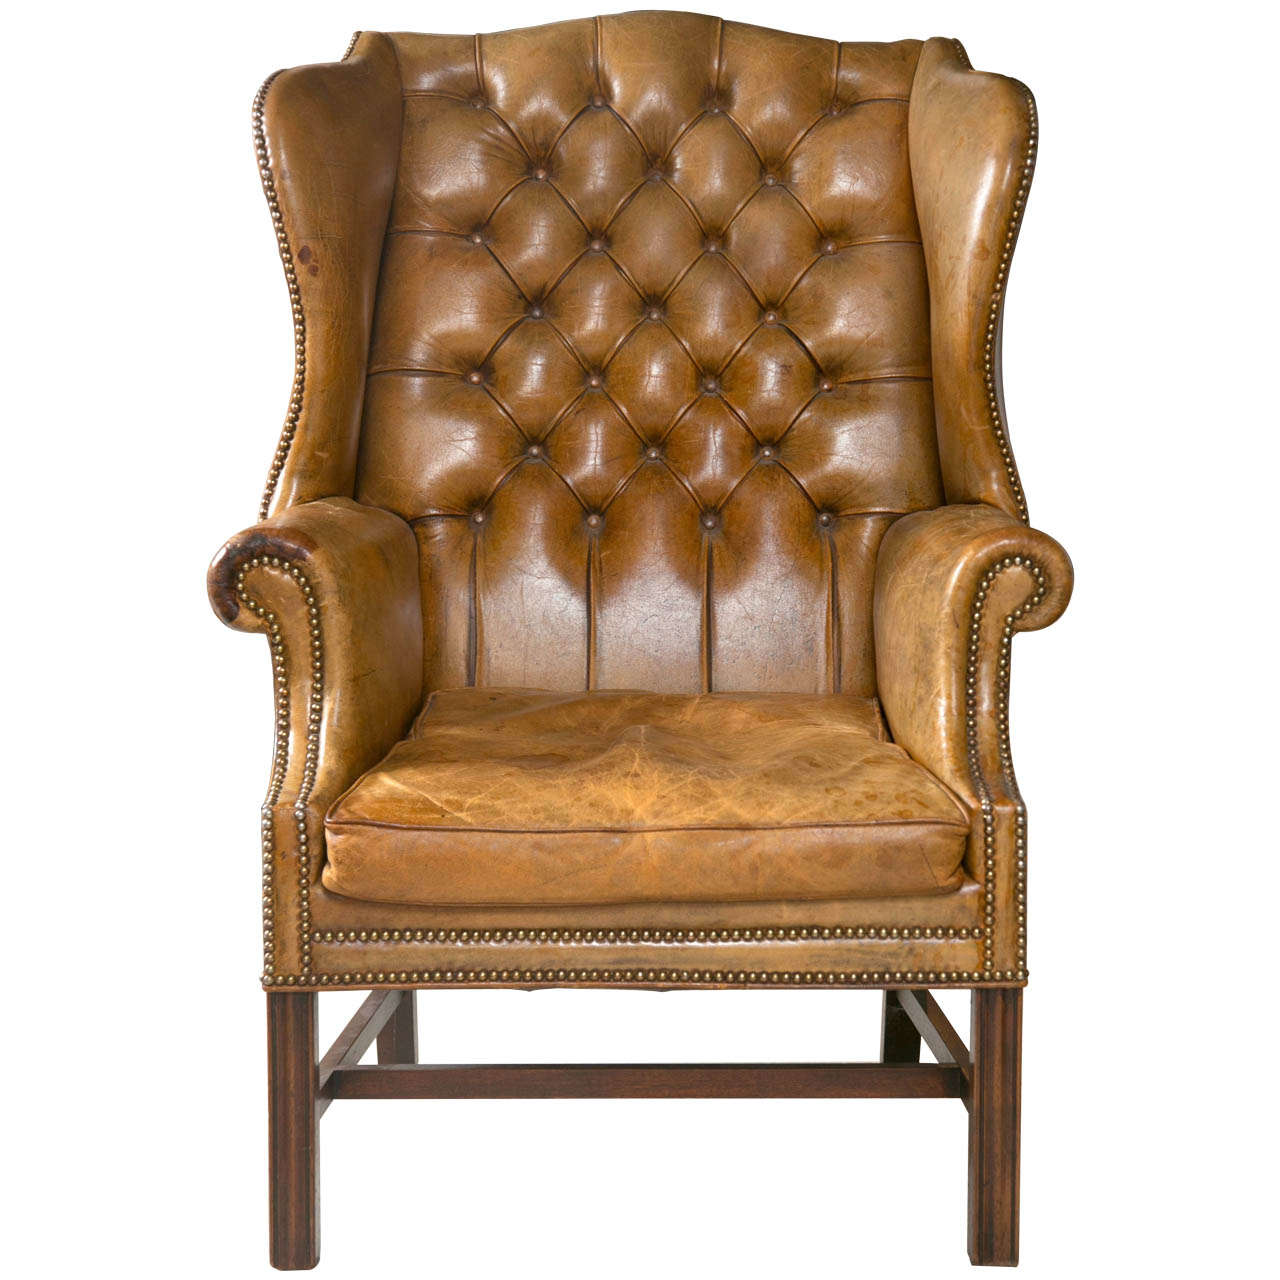 leather wingback chairs south africa white resin wicker 1920 s chair at 1stdibs for sale